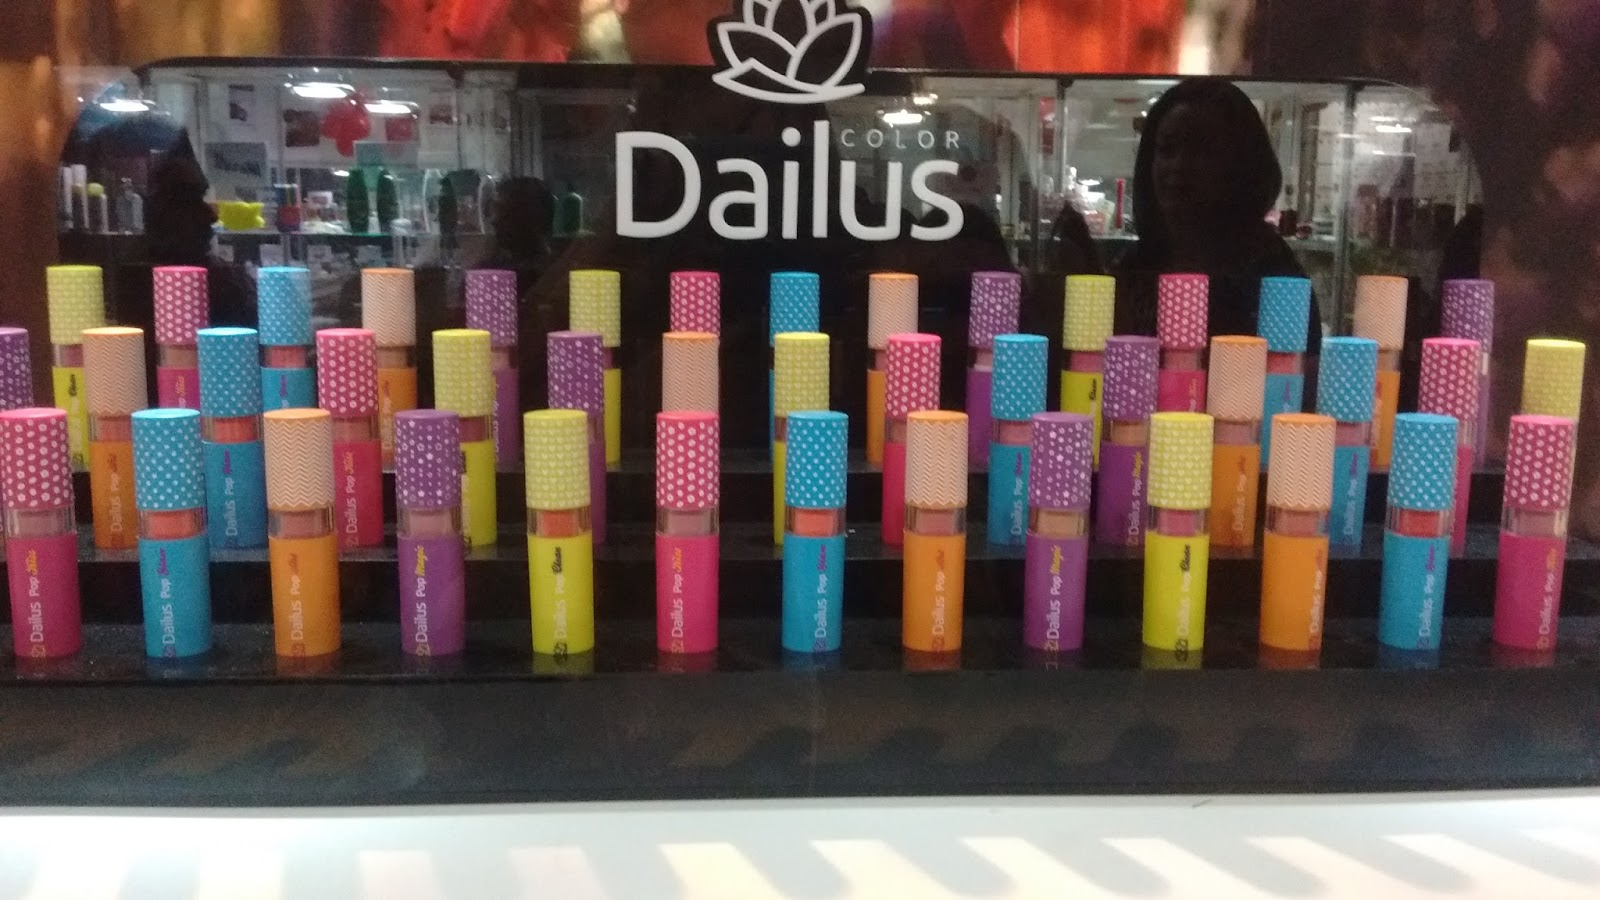 Batons Pop Dailus- Blog Ally Arruda